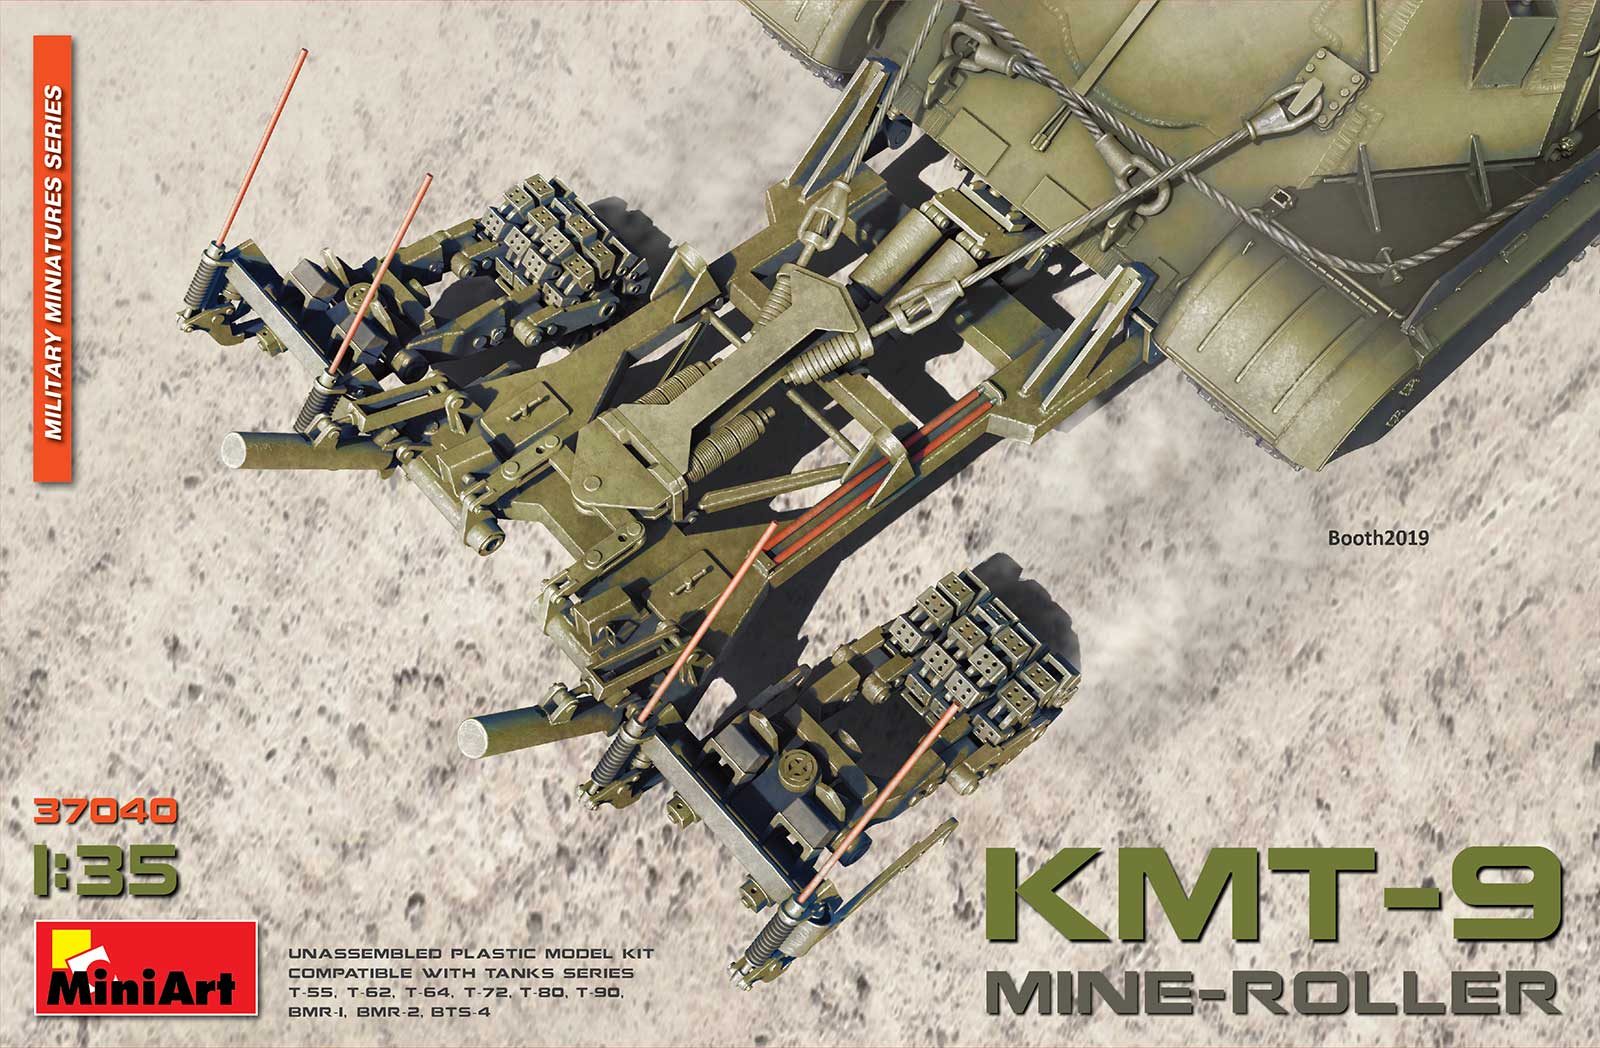 MiniArt Mine-Roller KMT-9